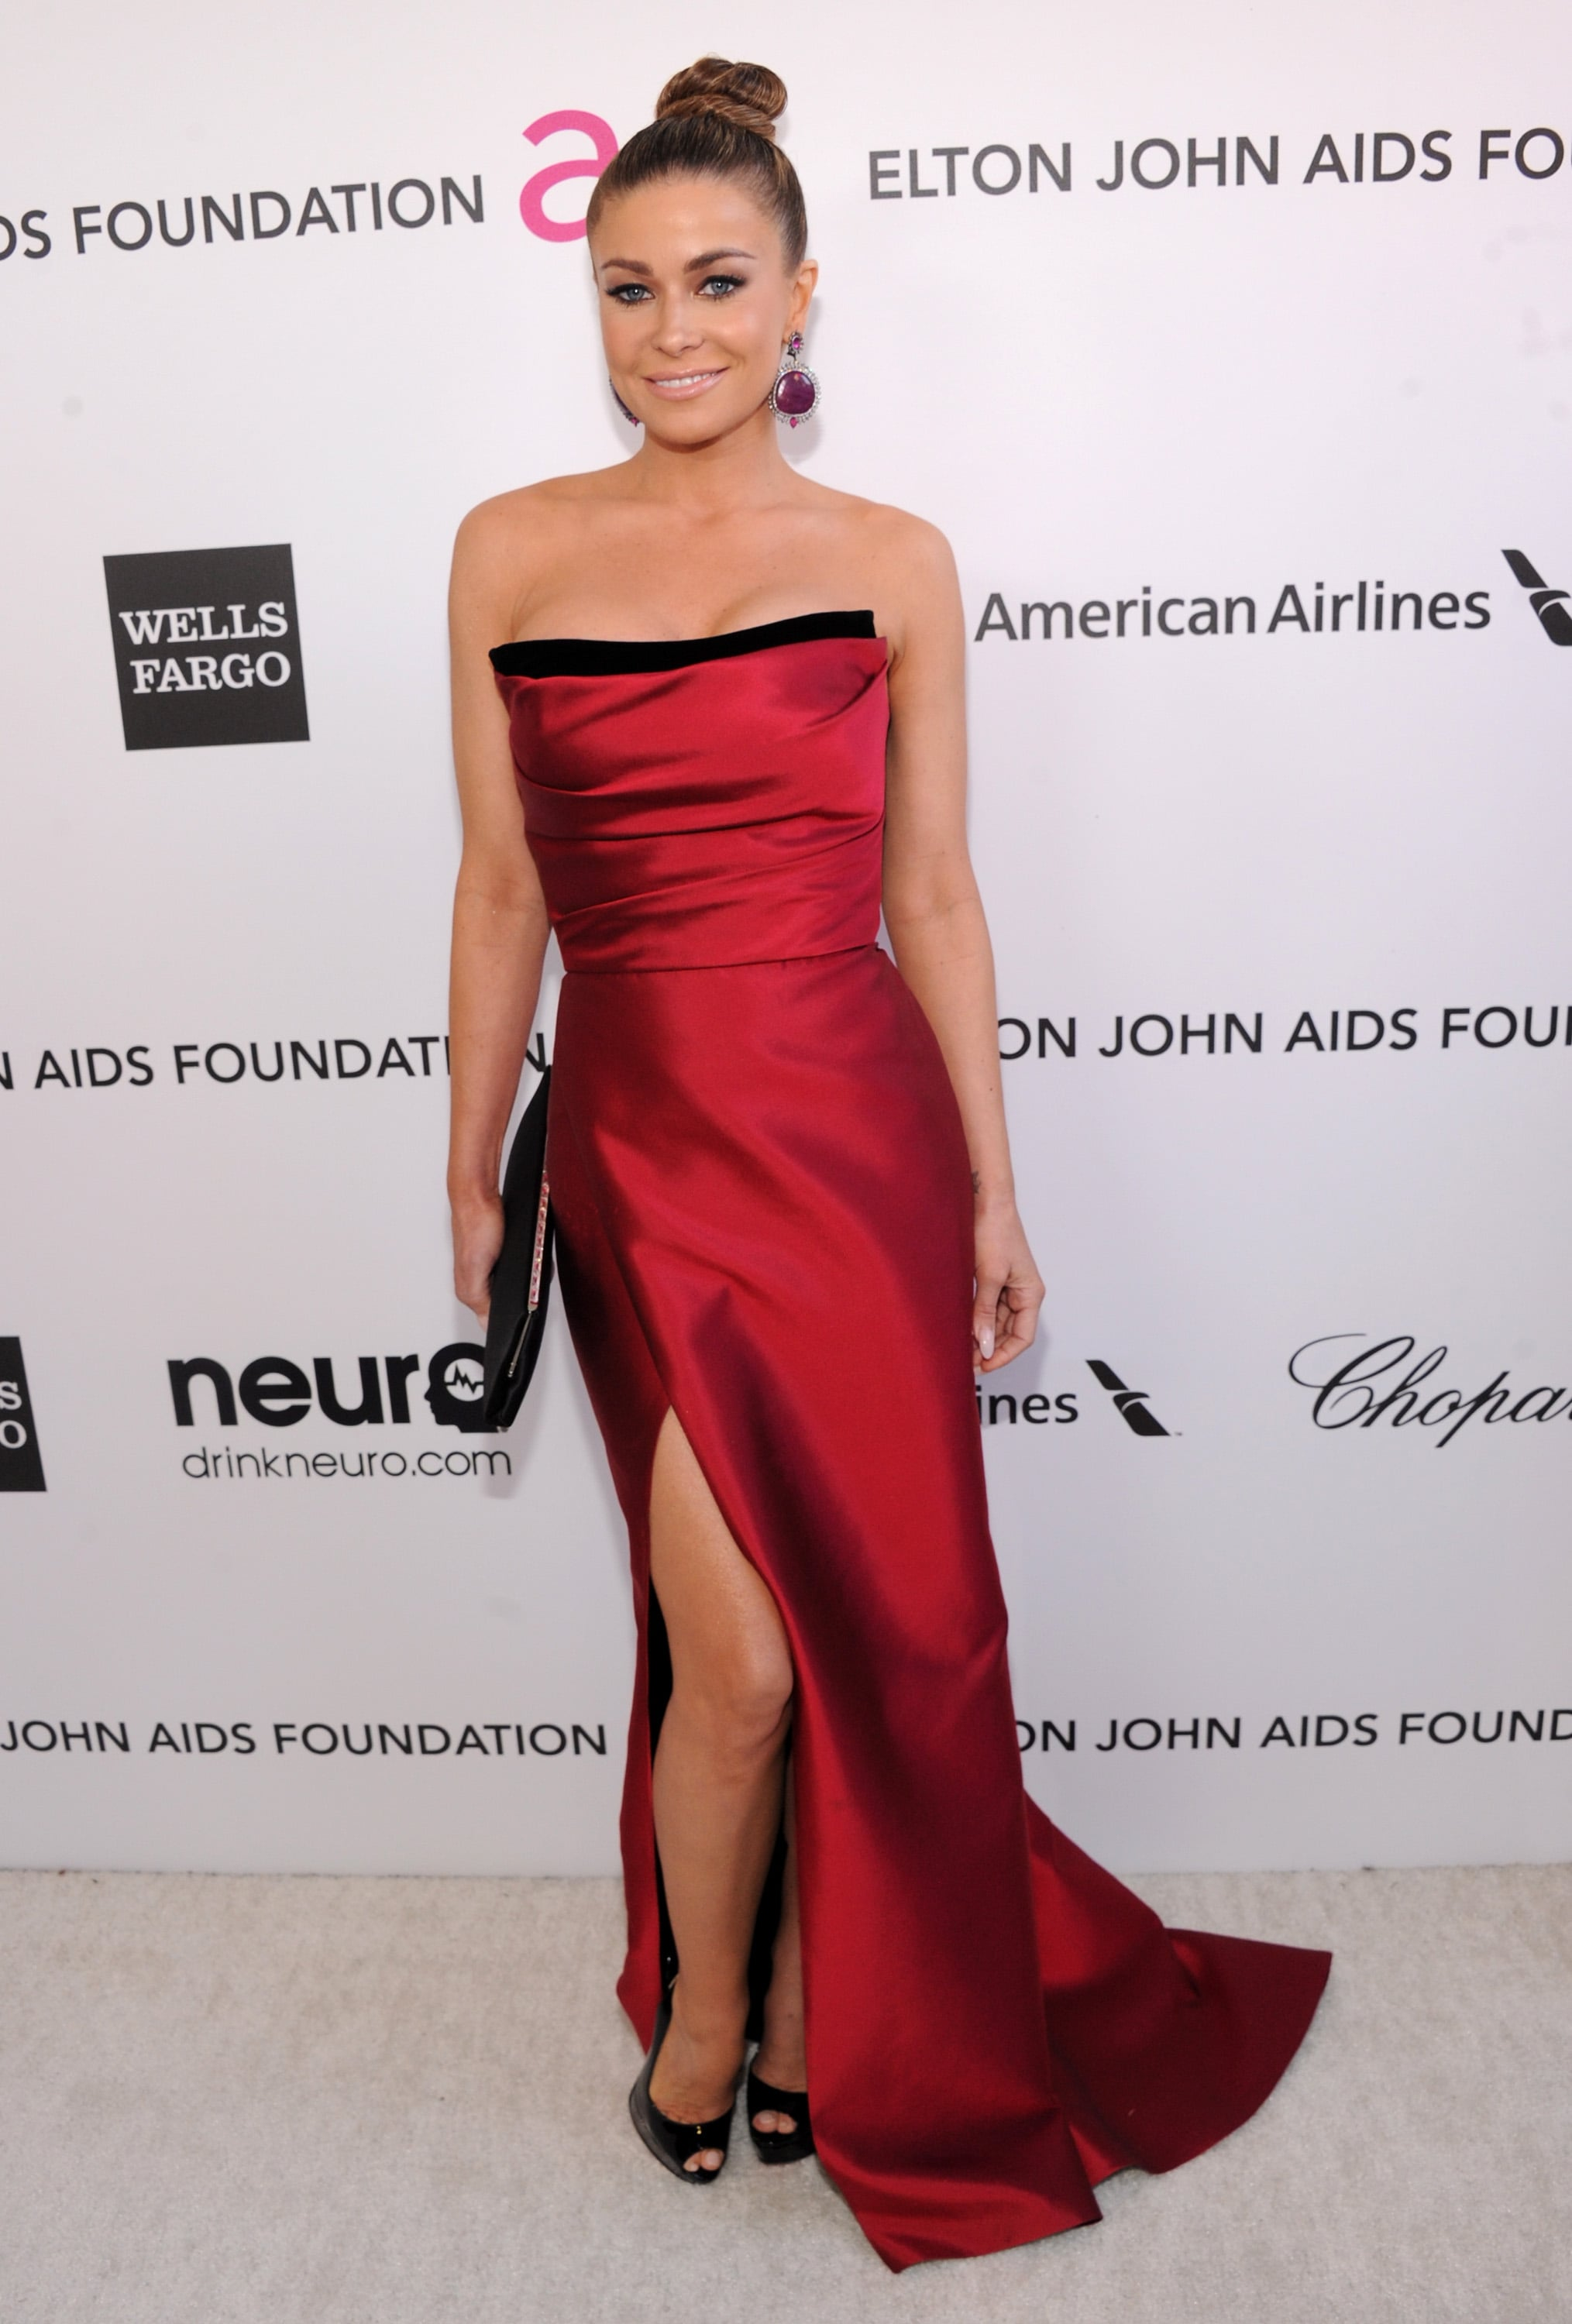 Carmen Electra showed off her legs in a red dress with a high slit at Elton John's Oscar party in LA.